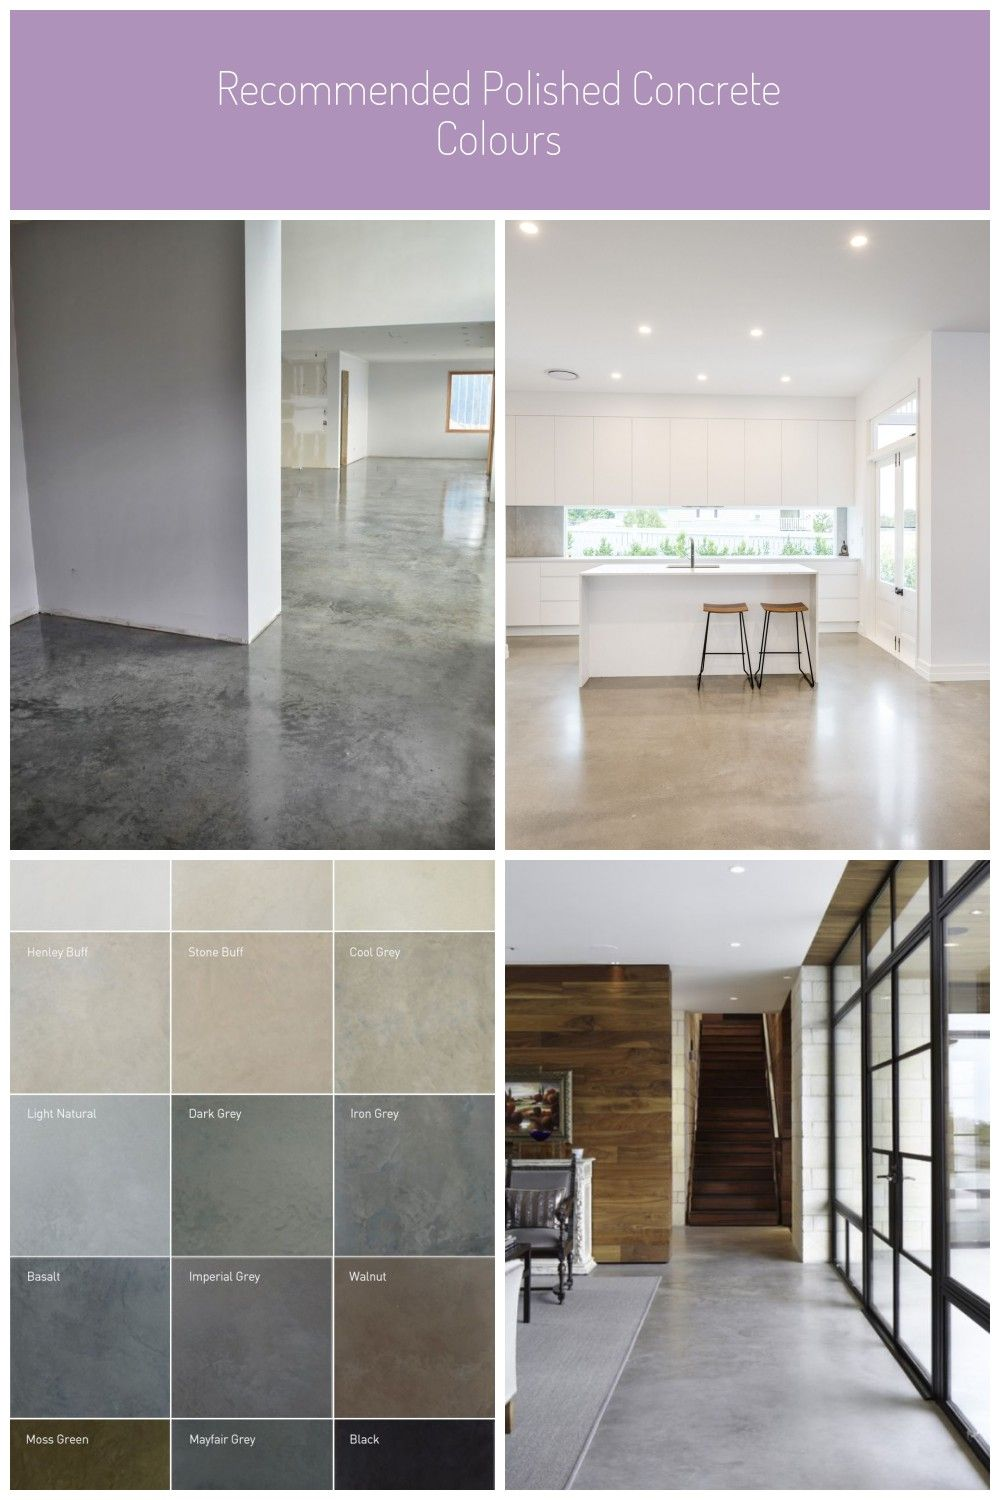 Many Concrete Contractors Recommend Applying A Mop Down Wax Or Floor Finish To Your Decorative Concrete Flo Decorative Concrete Floors Flooring Concrete Floors